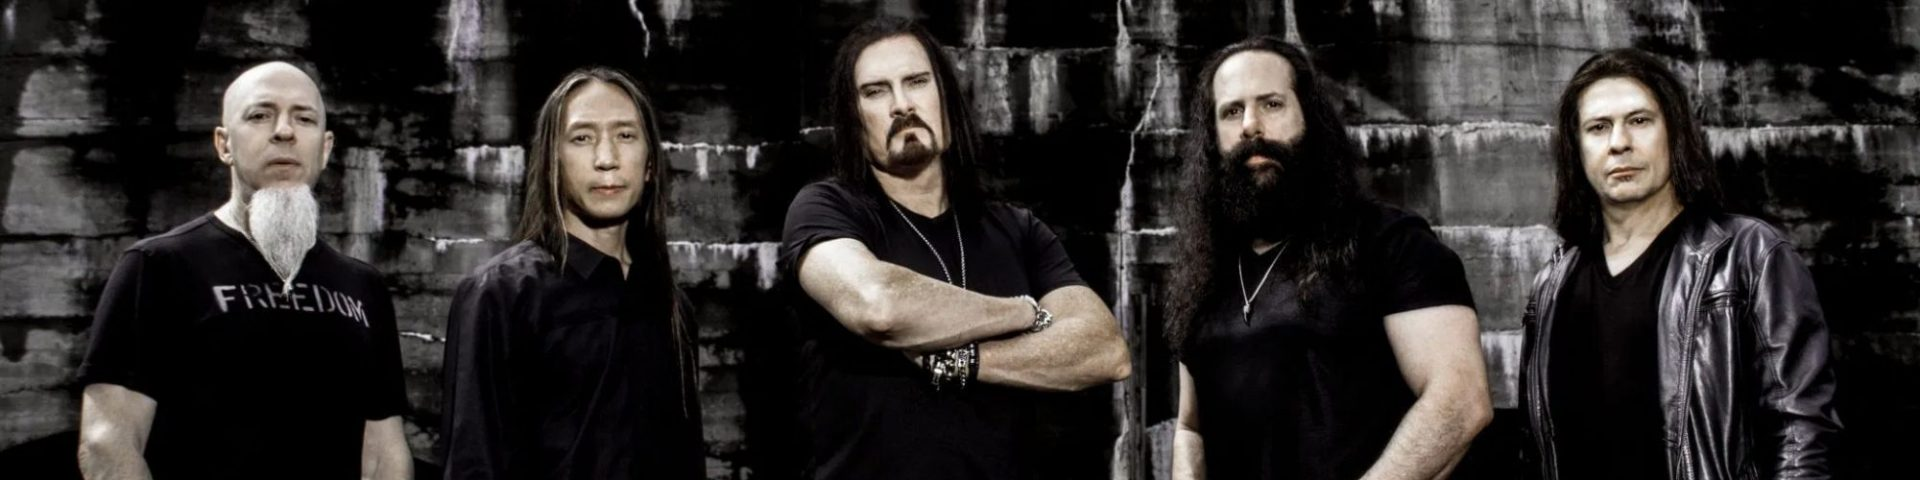 Dream Theater a Assago 12/02